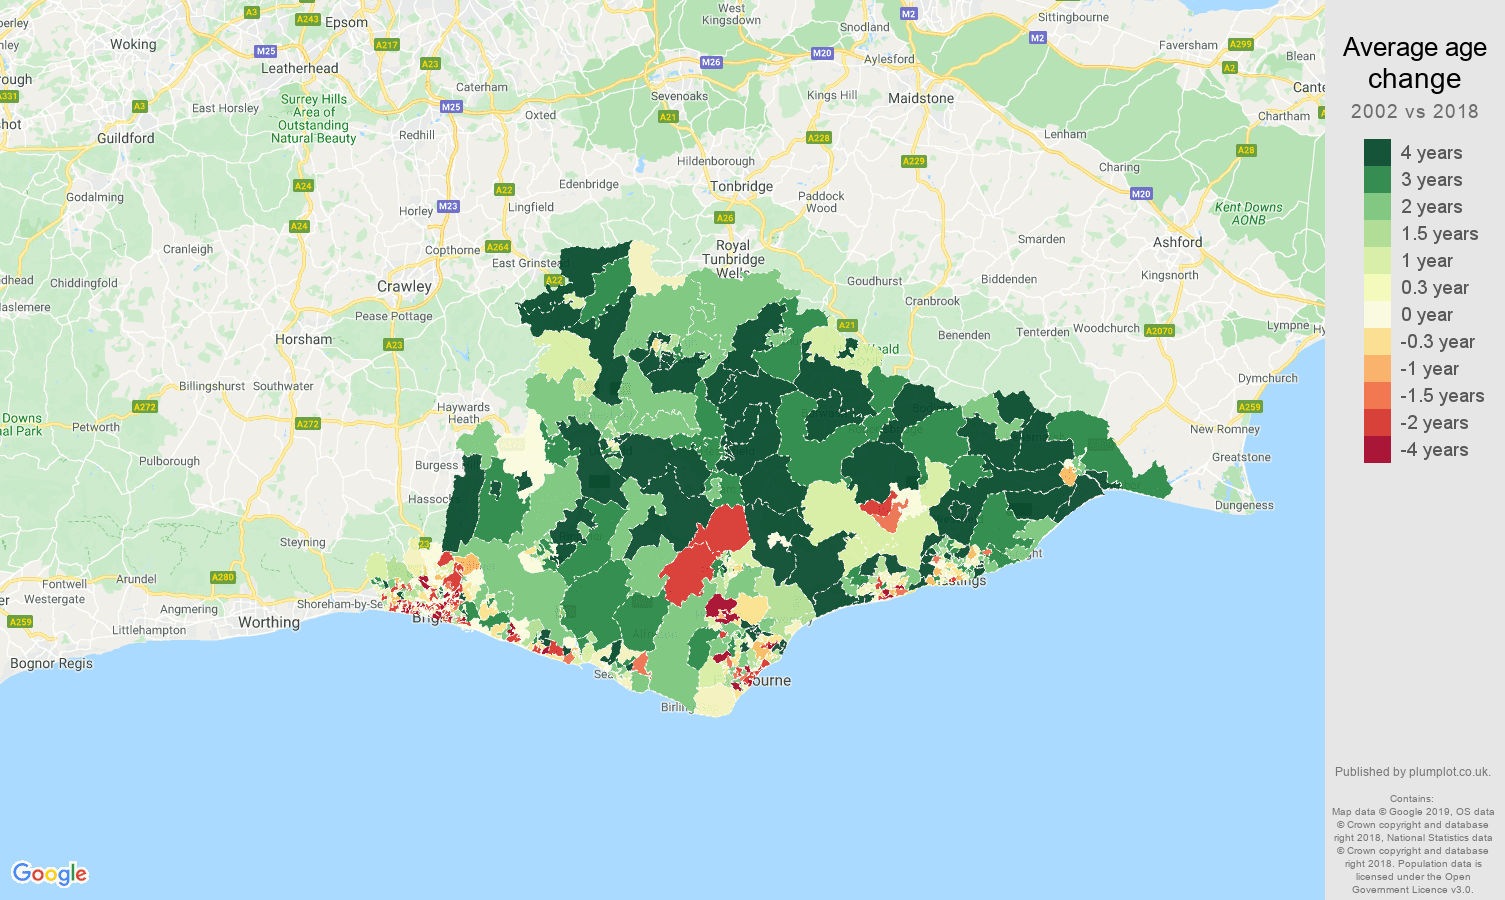 East Sussex average age change map